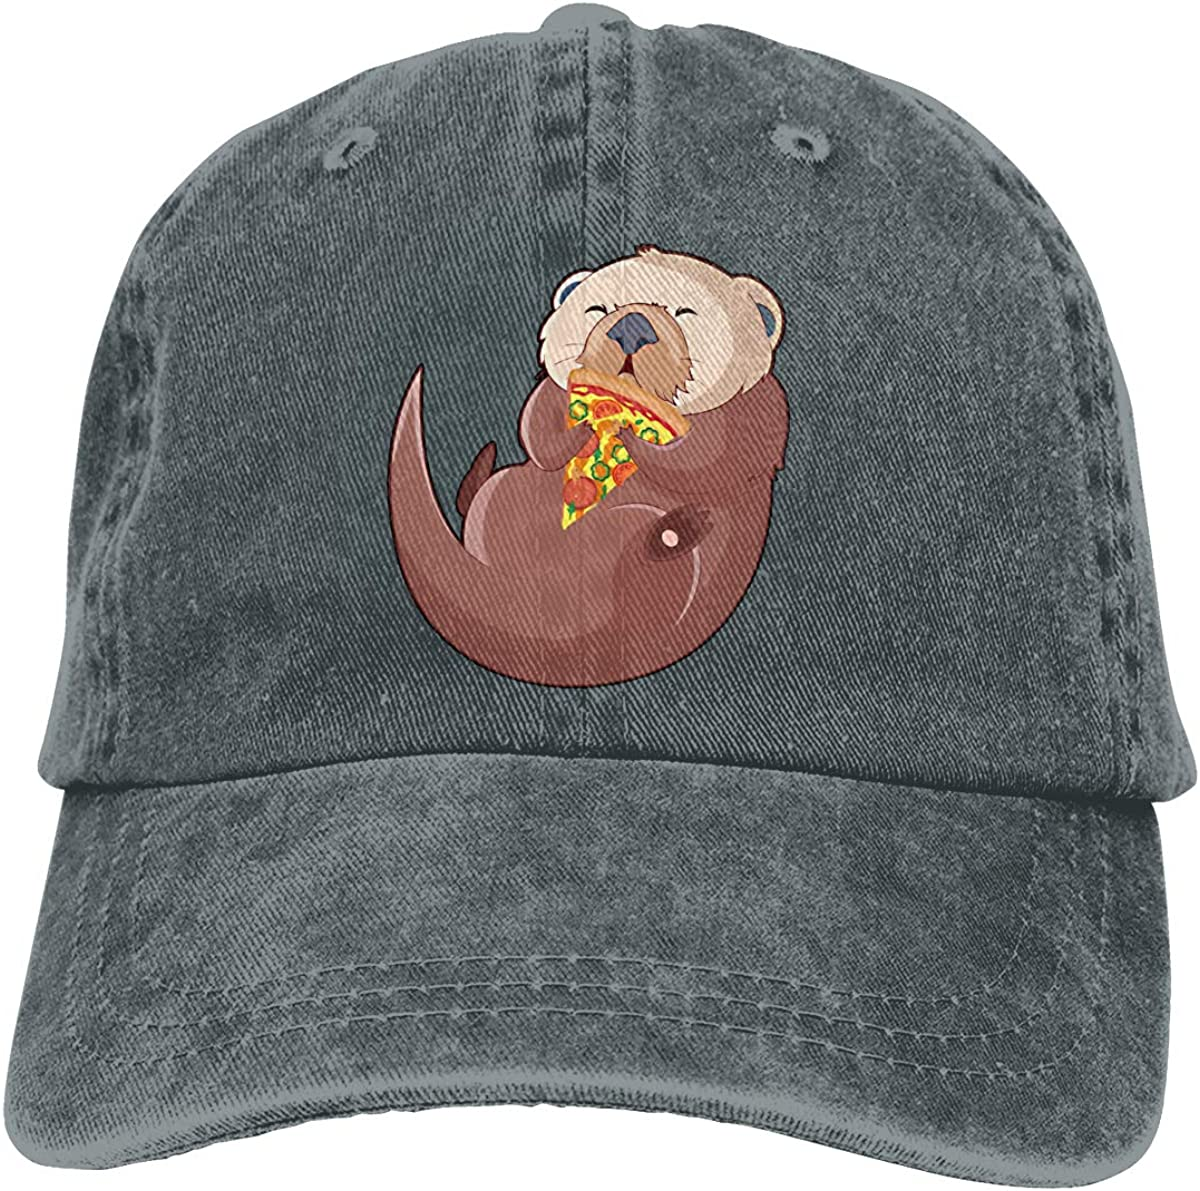 Unisex Funny Sea Otter with Pizza Vintage Washed Dad Hat Funny Adjustable Baseball Cap